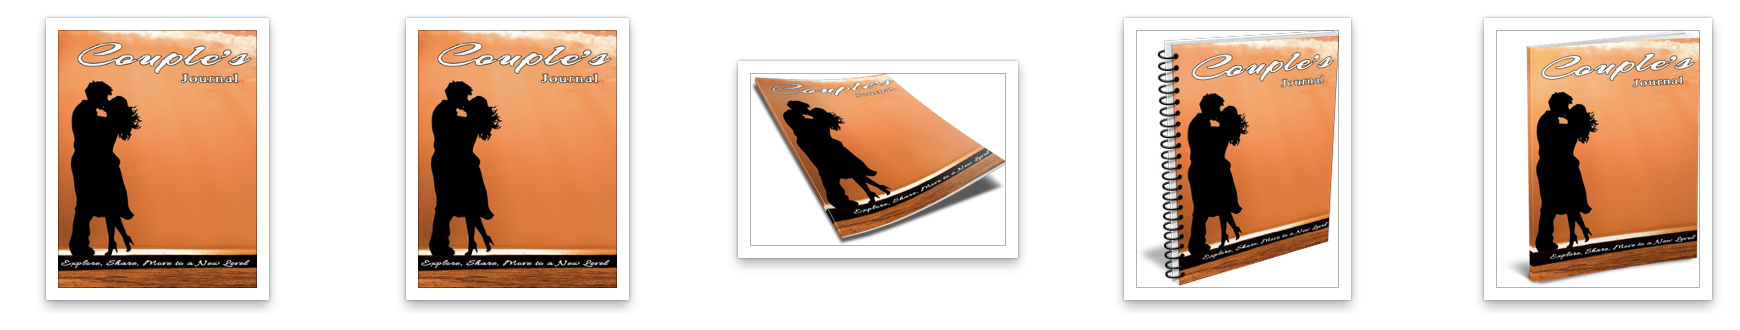 Couple Journal Cover Graphics